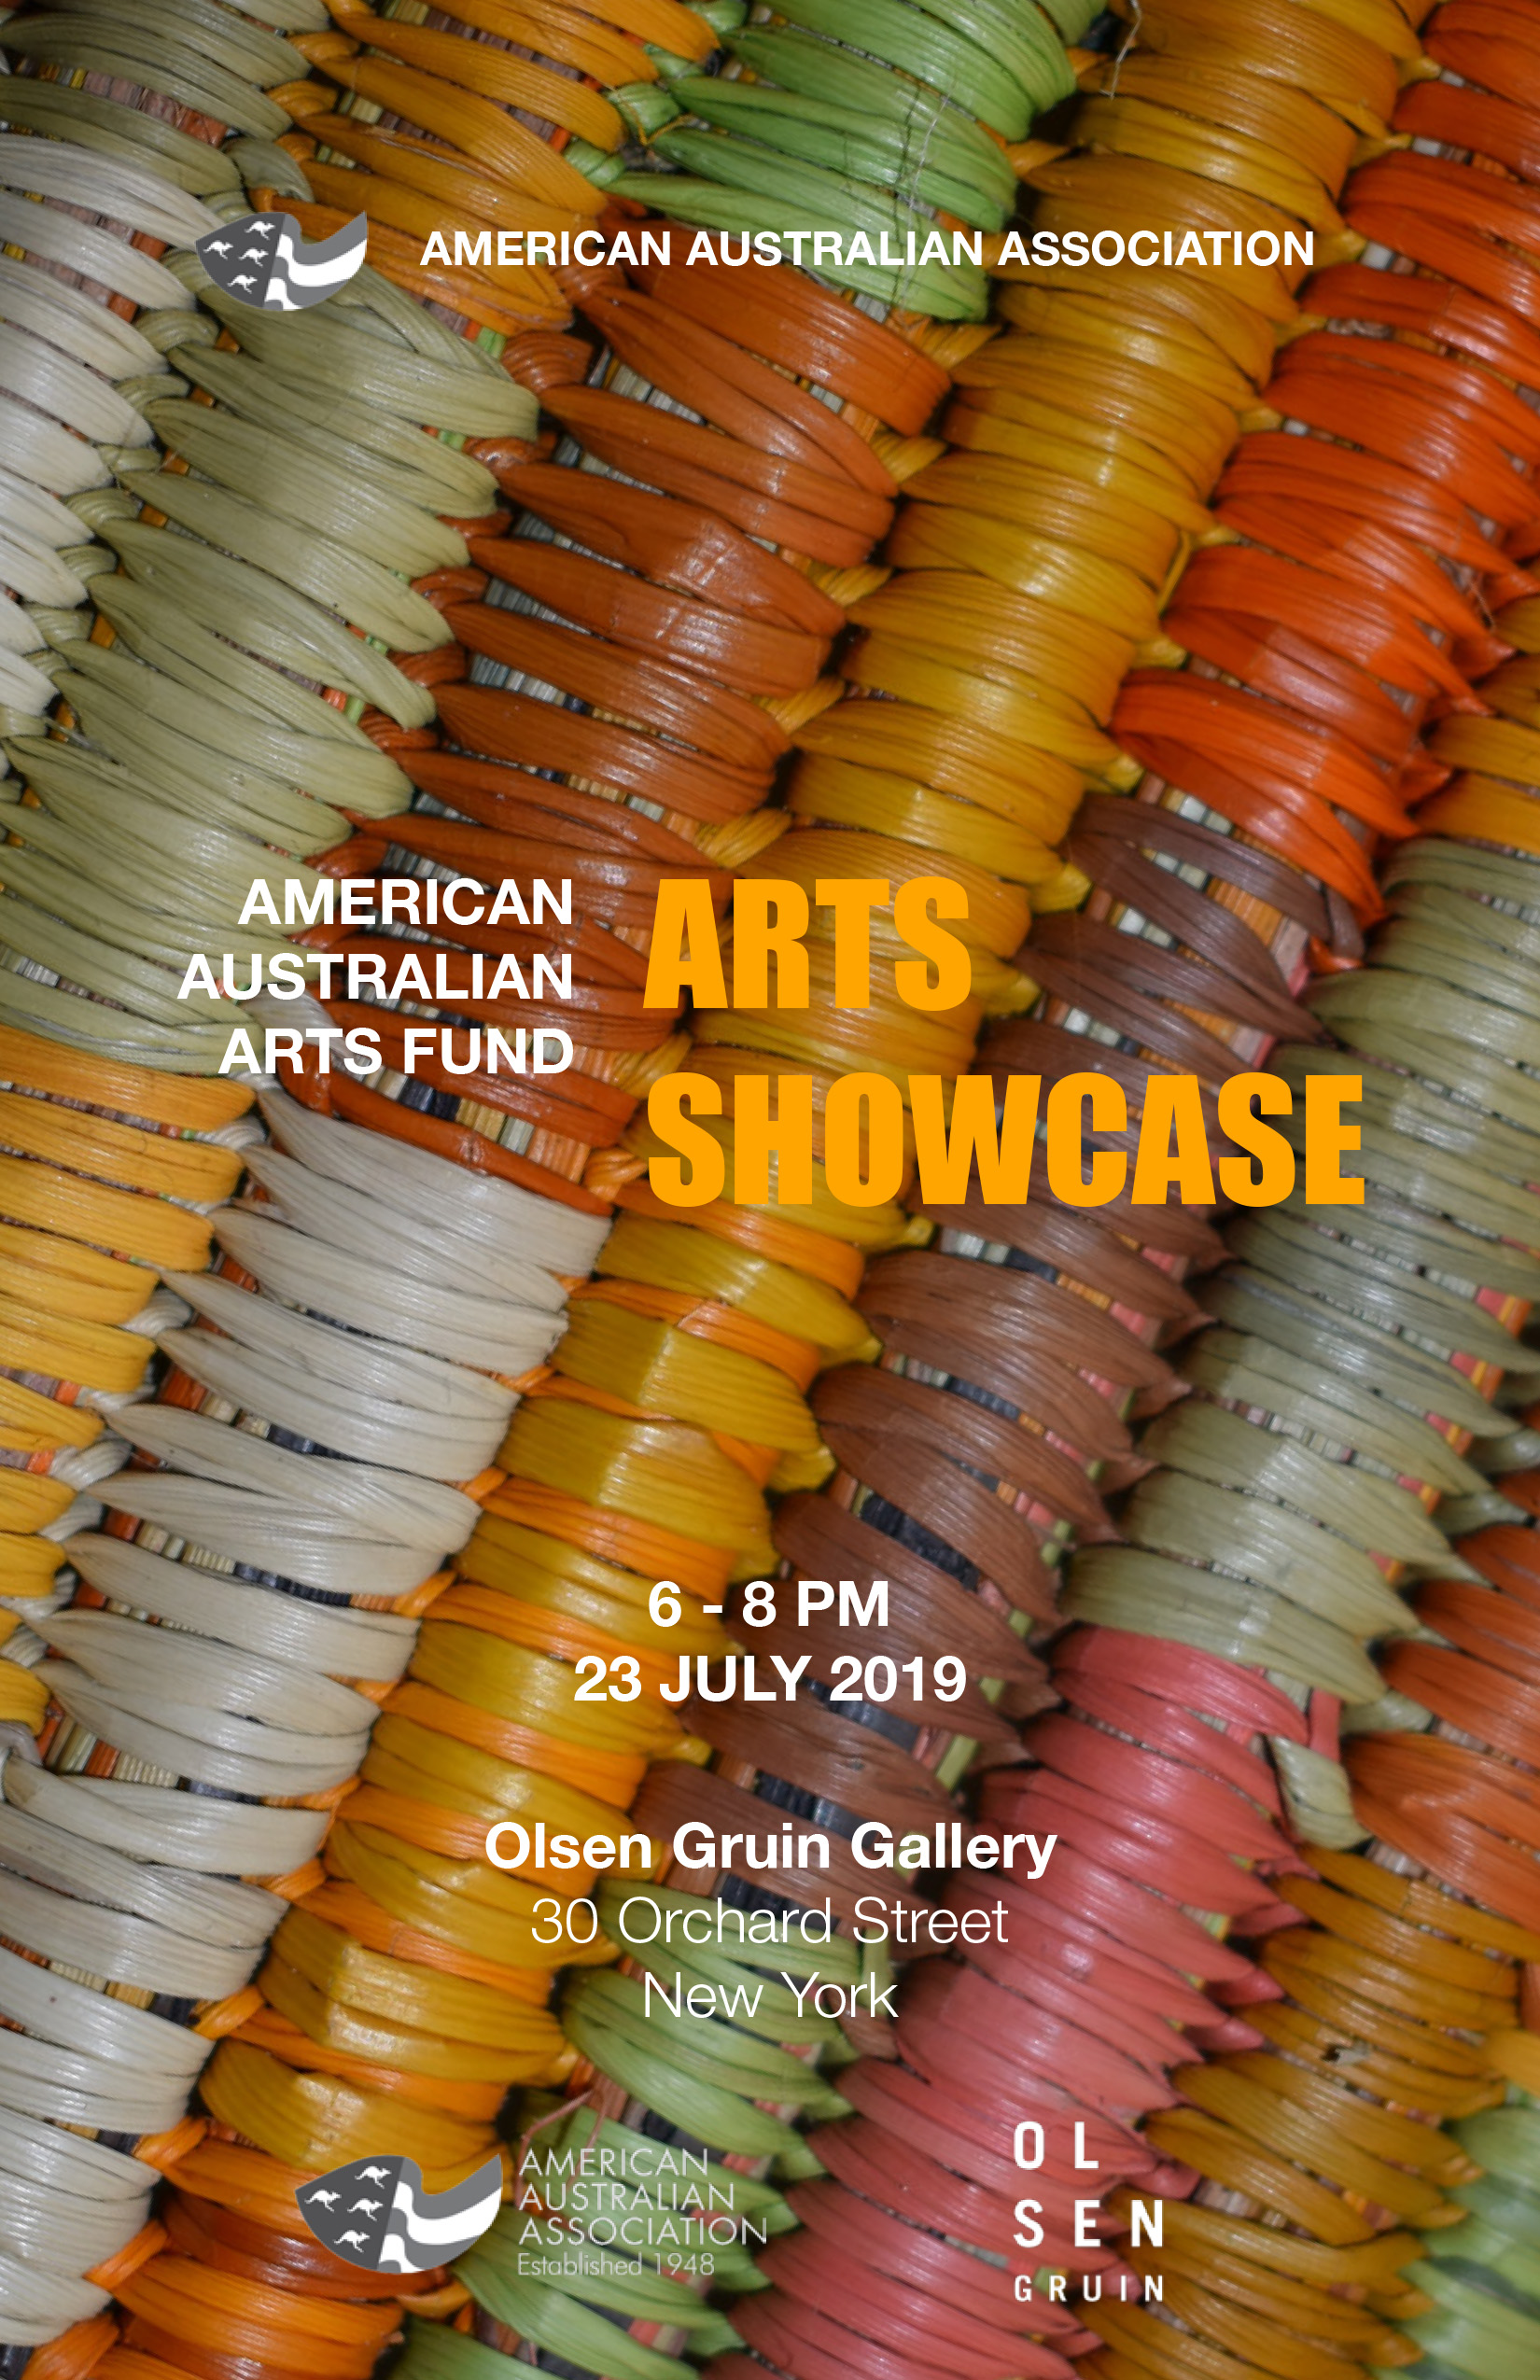 2019 Arts Showcase Invitation.jpg